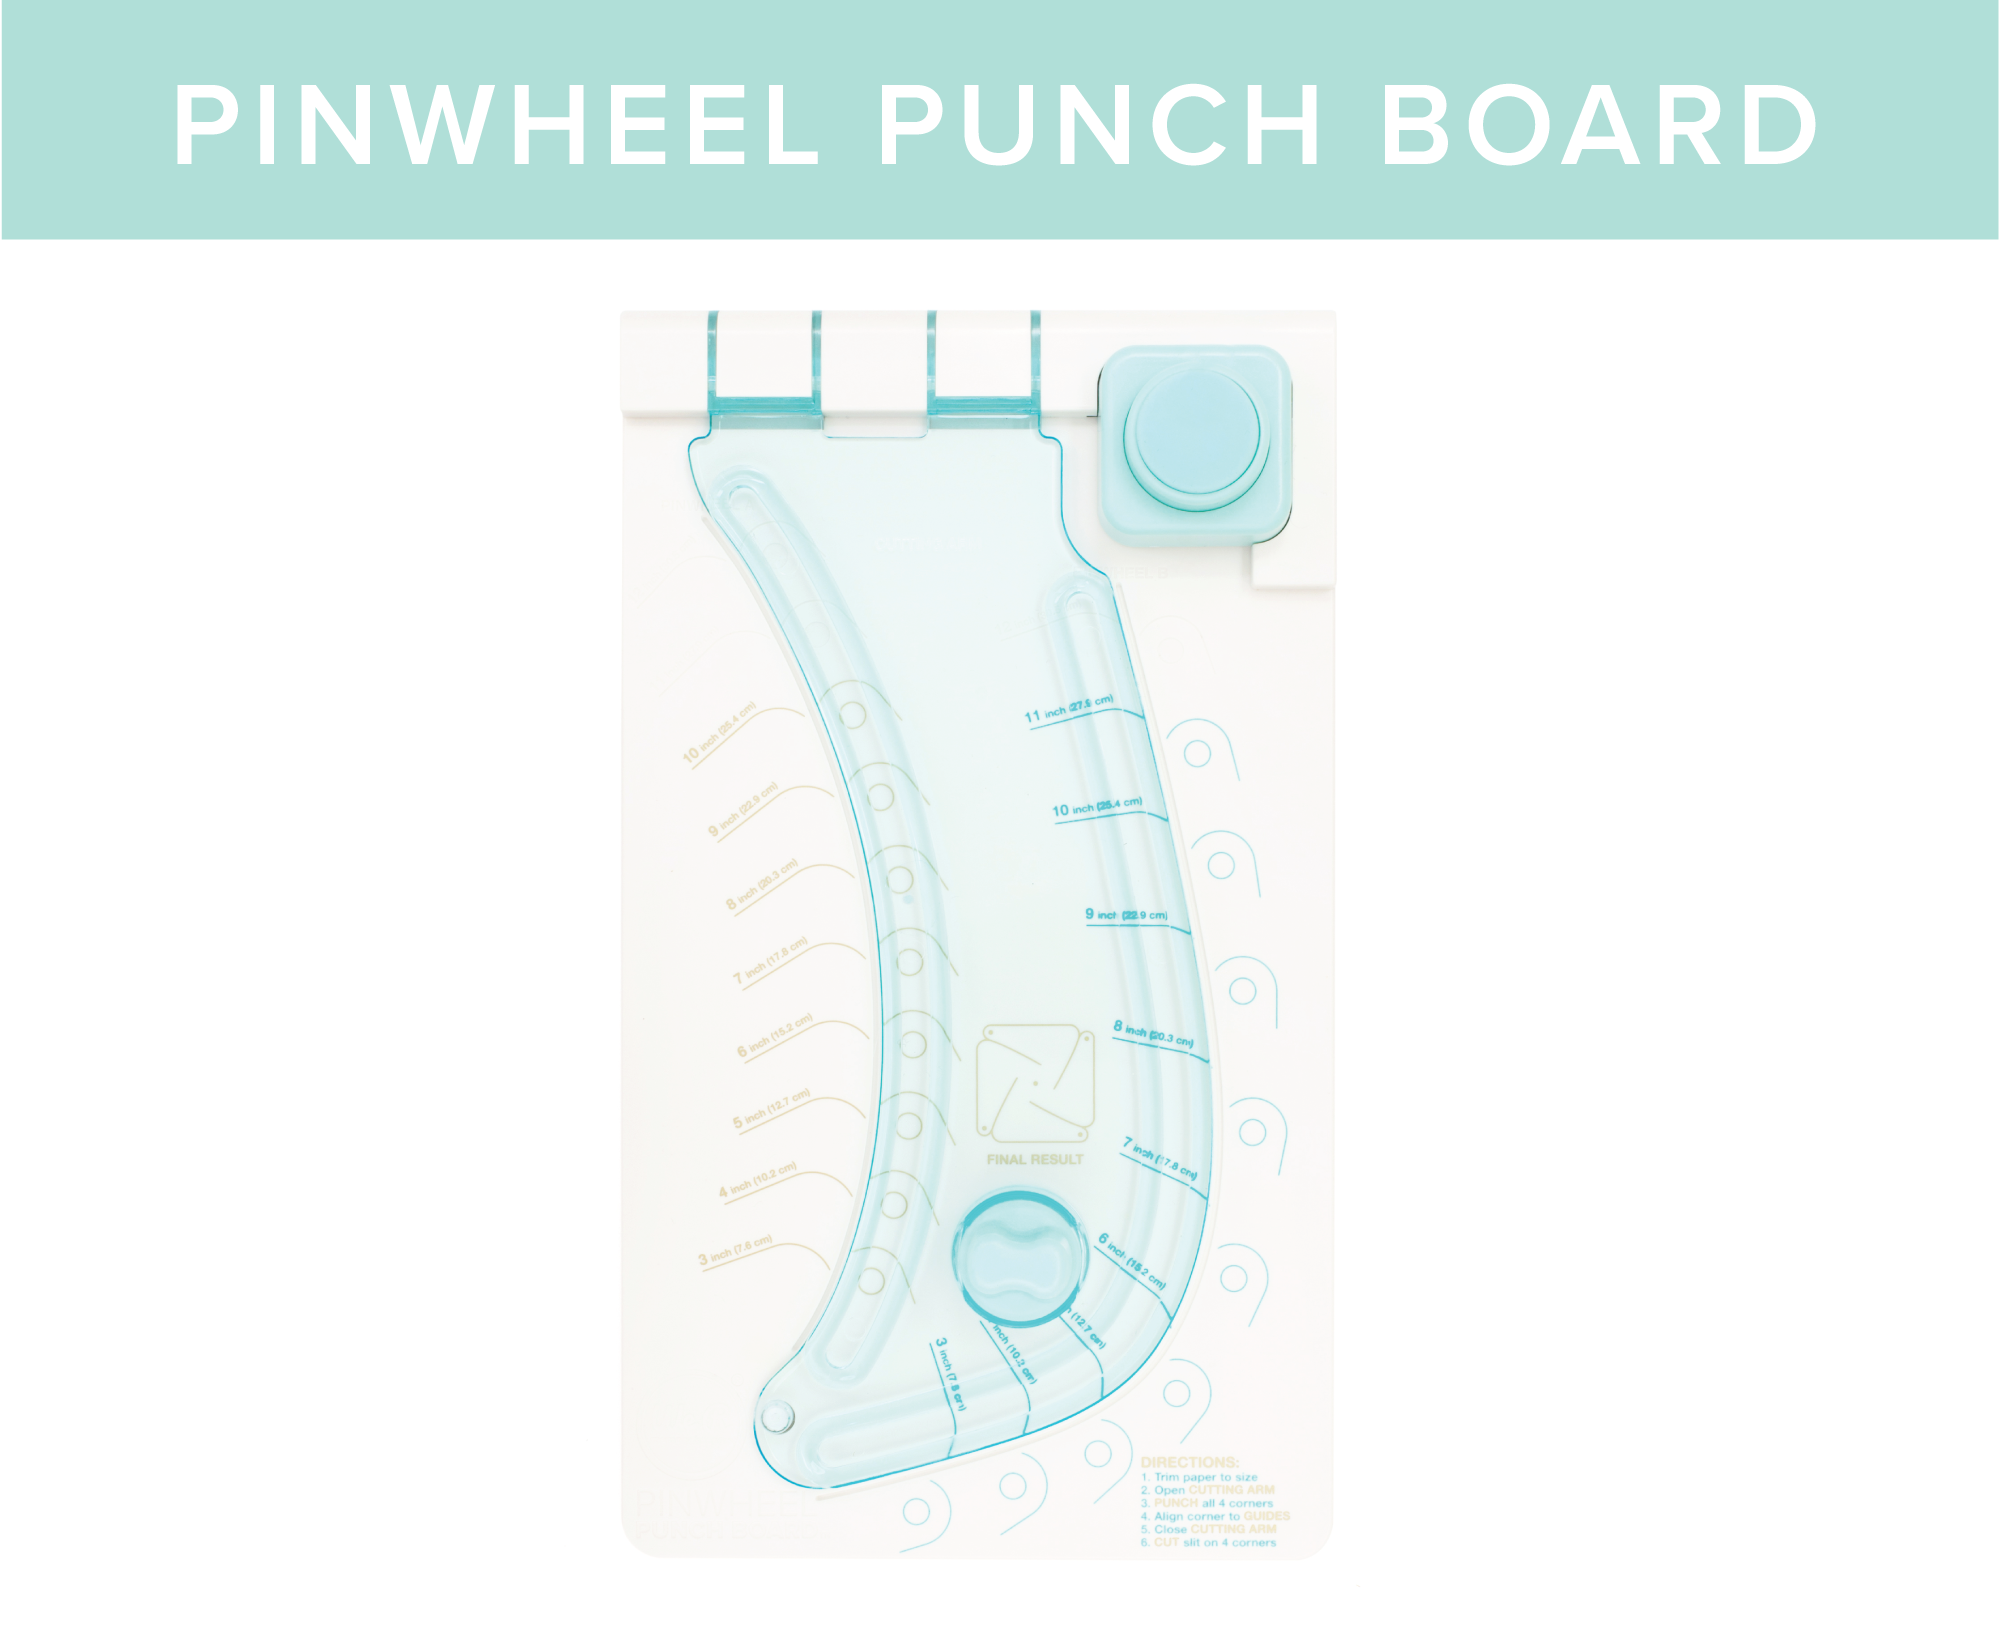 WR_PunchBoards_Instructions_Links_PinwheelPB